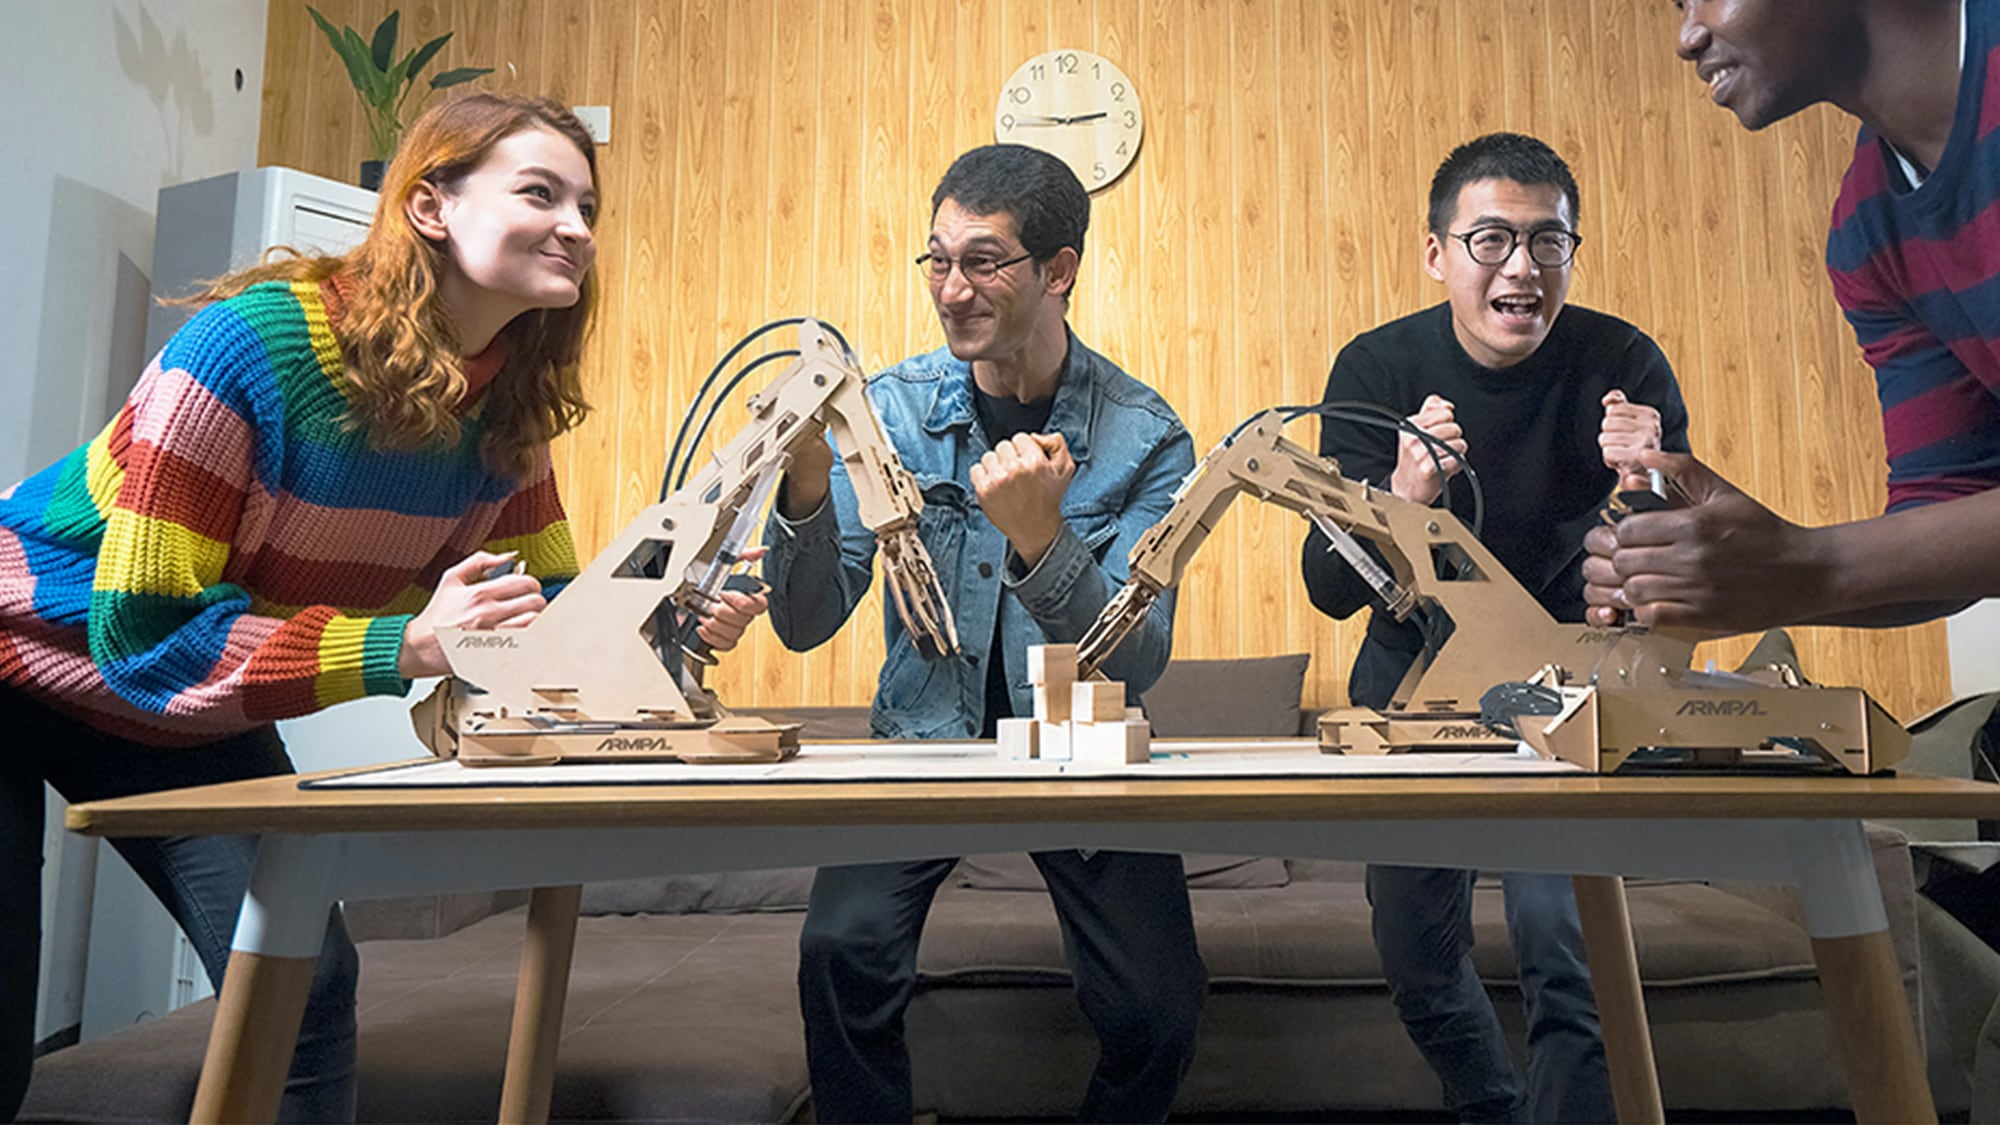 ARMPAL 3D Wooden Tabletop Game